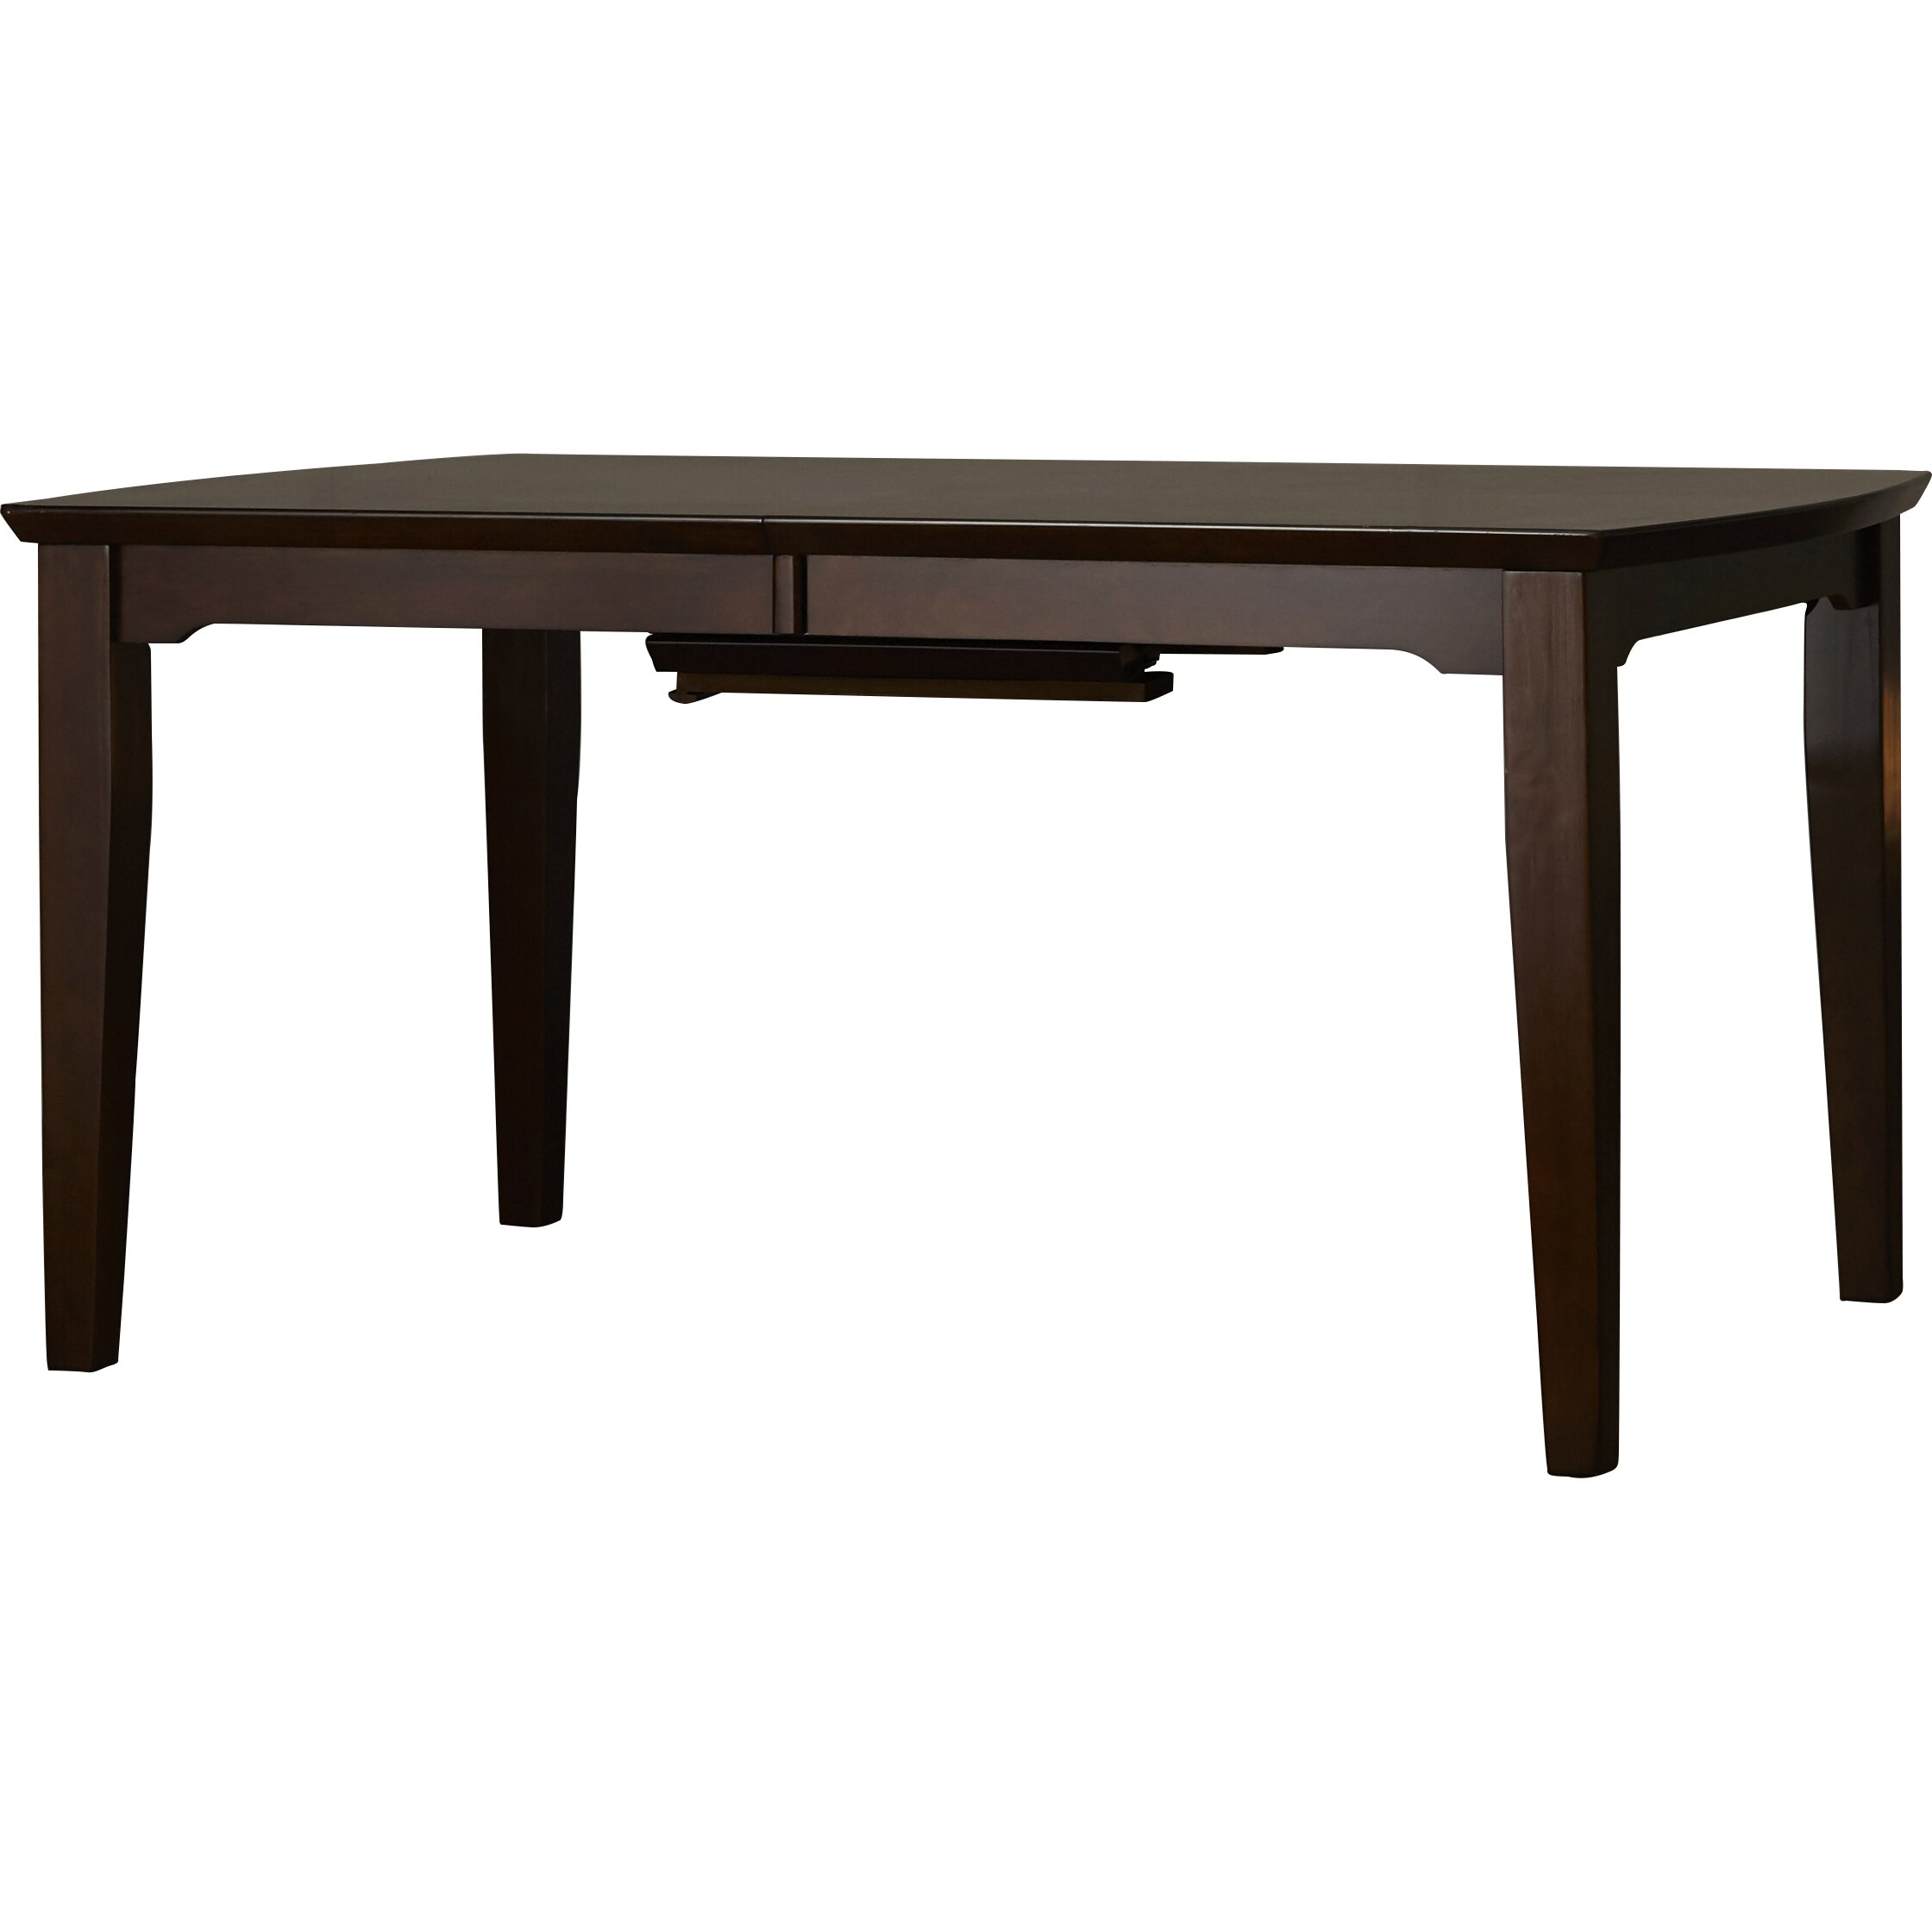 Three posts harborcreek extendable dining table reviews for Wayfair dining table